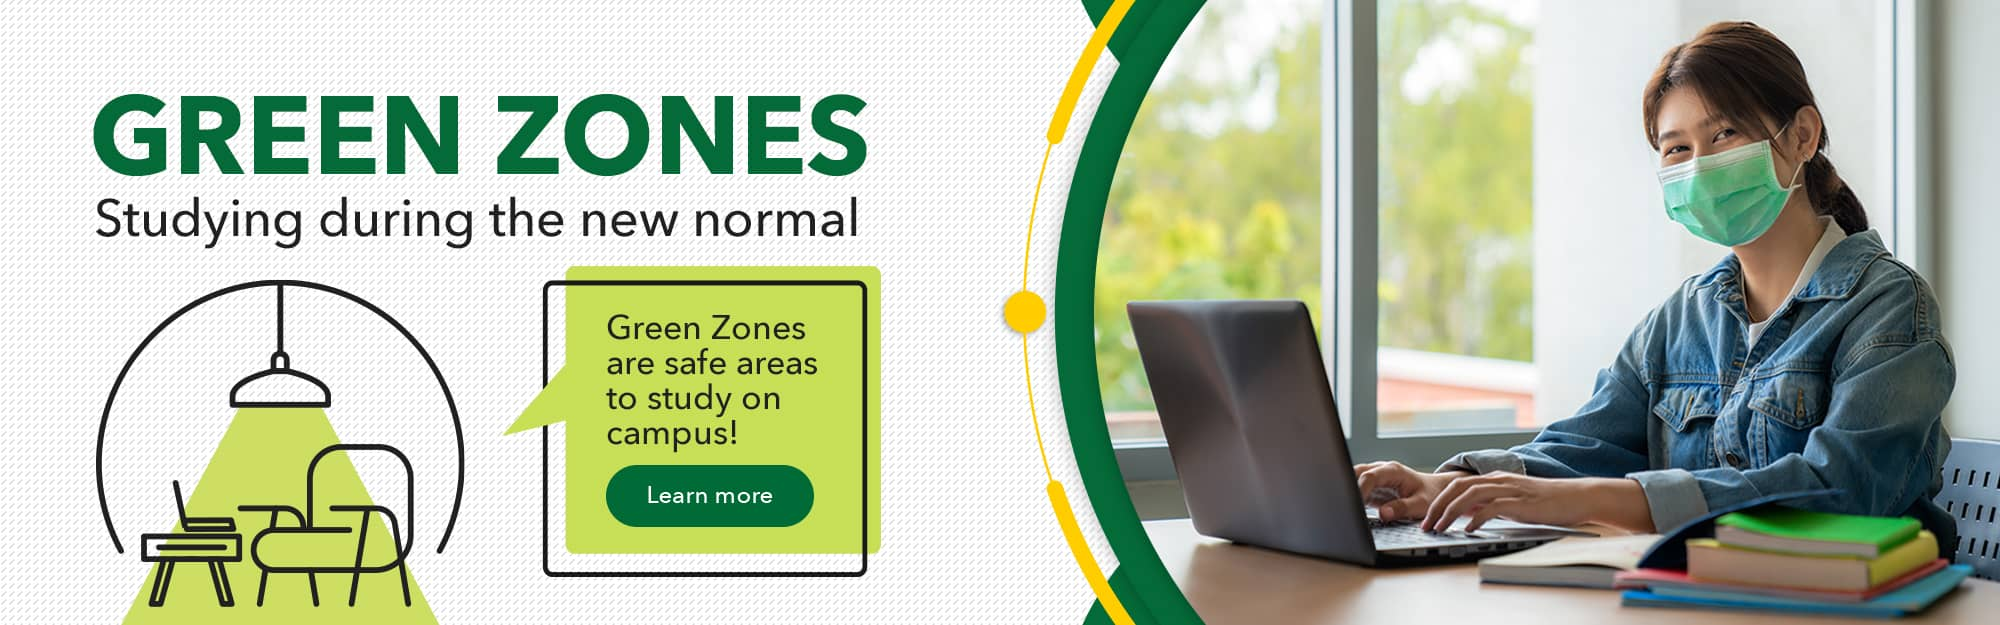 Green Zones: Safe areas on campus to study